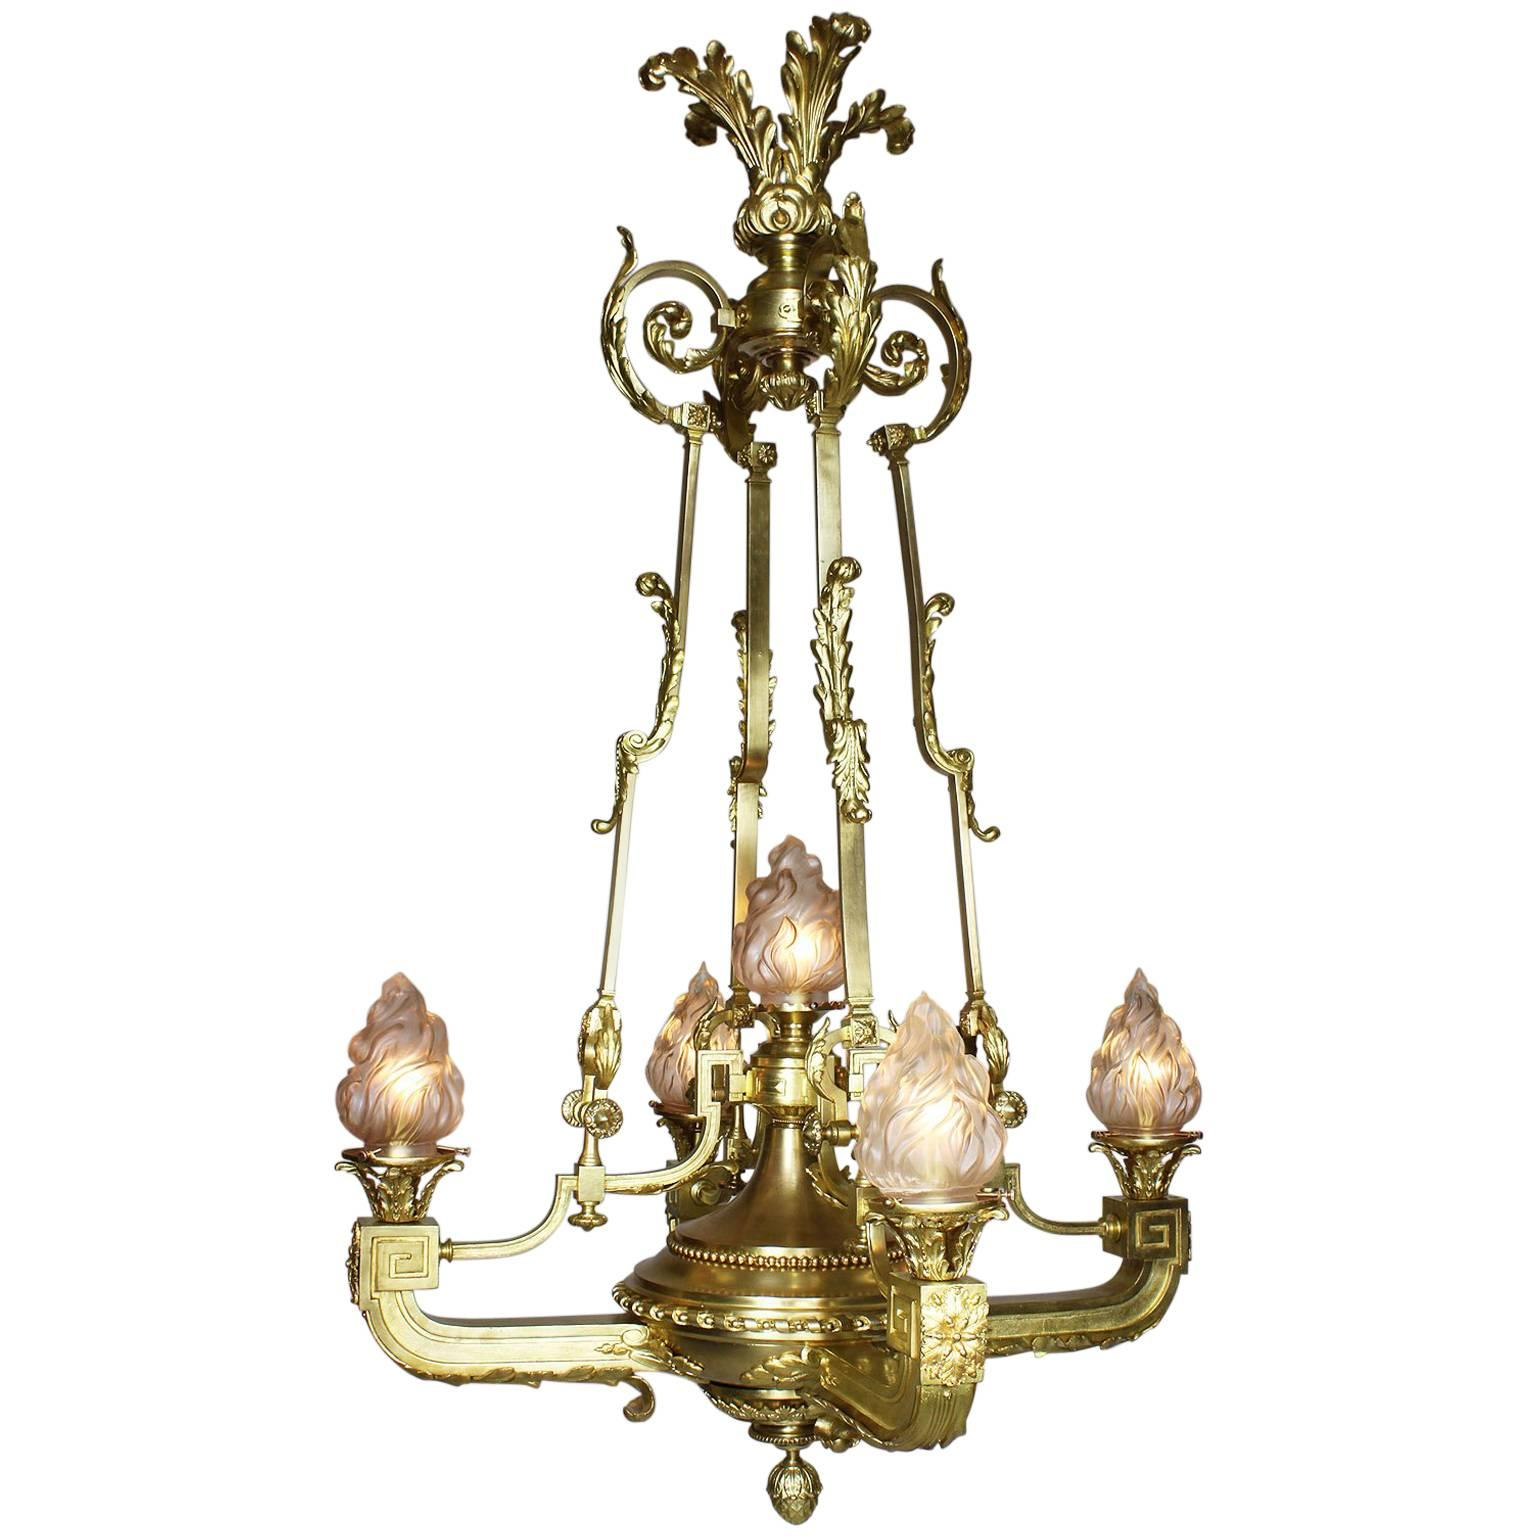 French 19th-20th Century Neoclassical Style Gilt Bronze Five-Light Chandelier